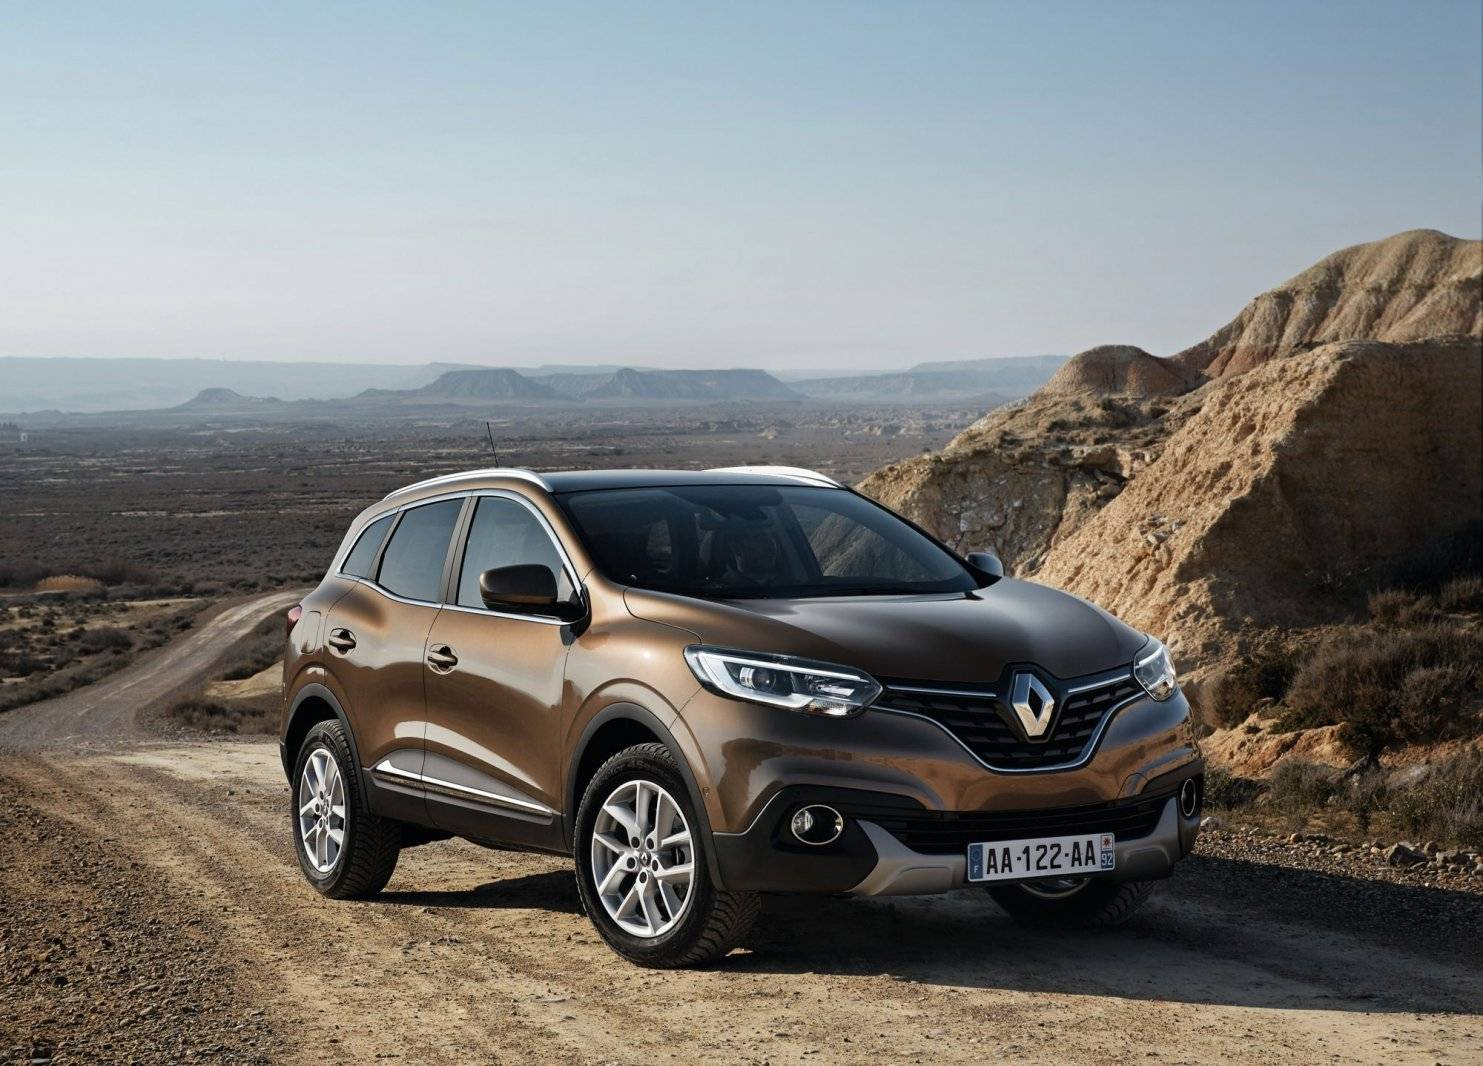 renault kadjar het motorengamma autonieuws. Black Bedroom Furniture Sets. Home Design Ideas